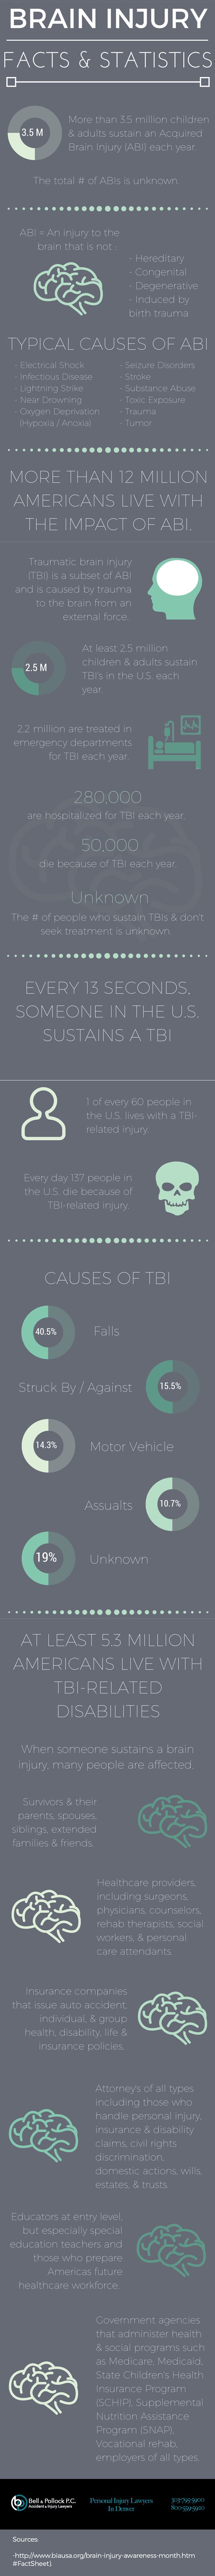 TBI Infographic: The Causes & Impacts of TBIs in the US